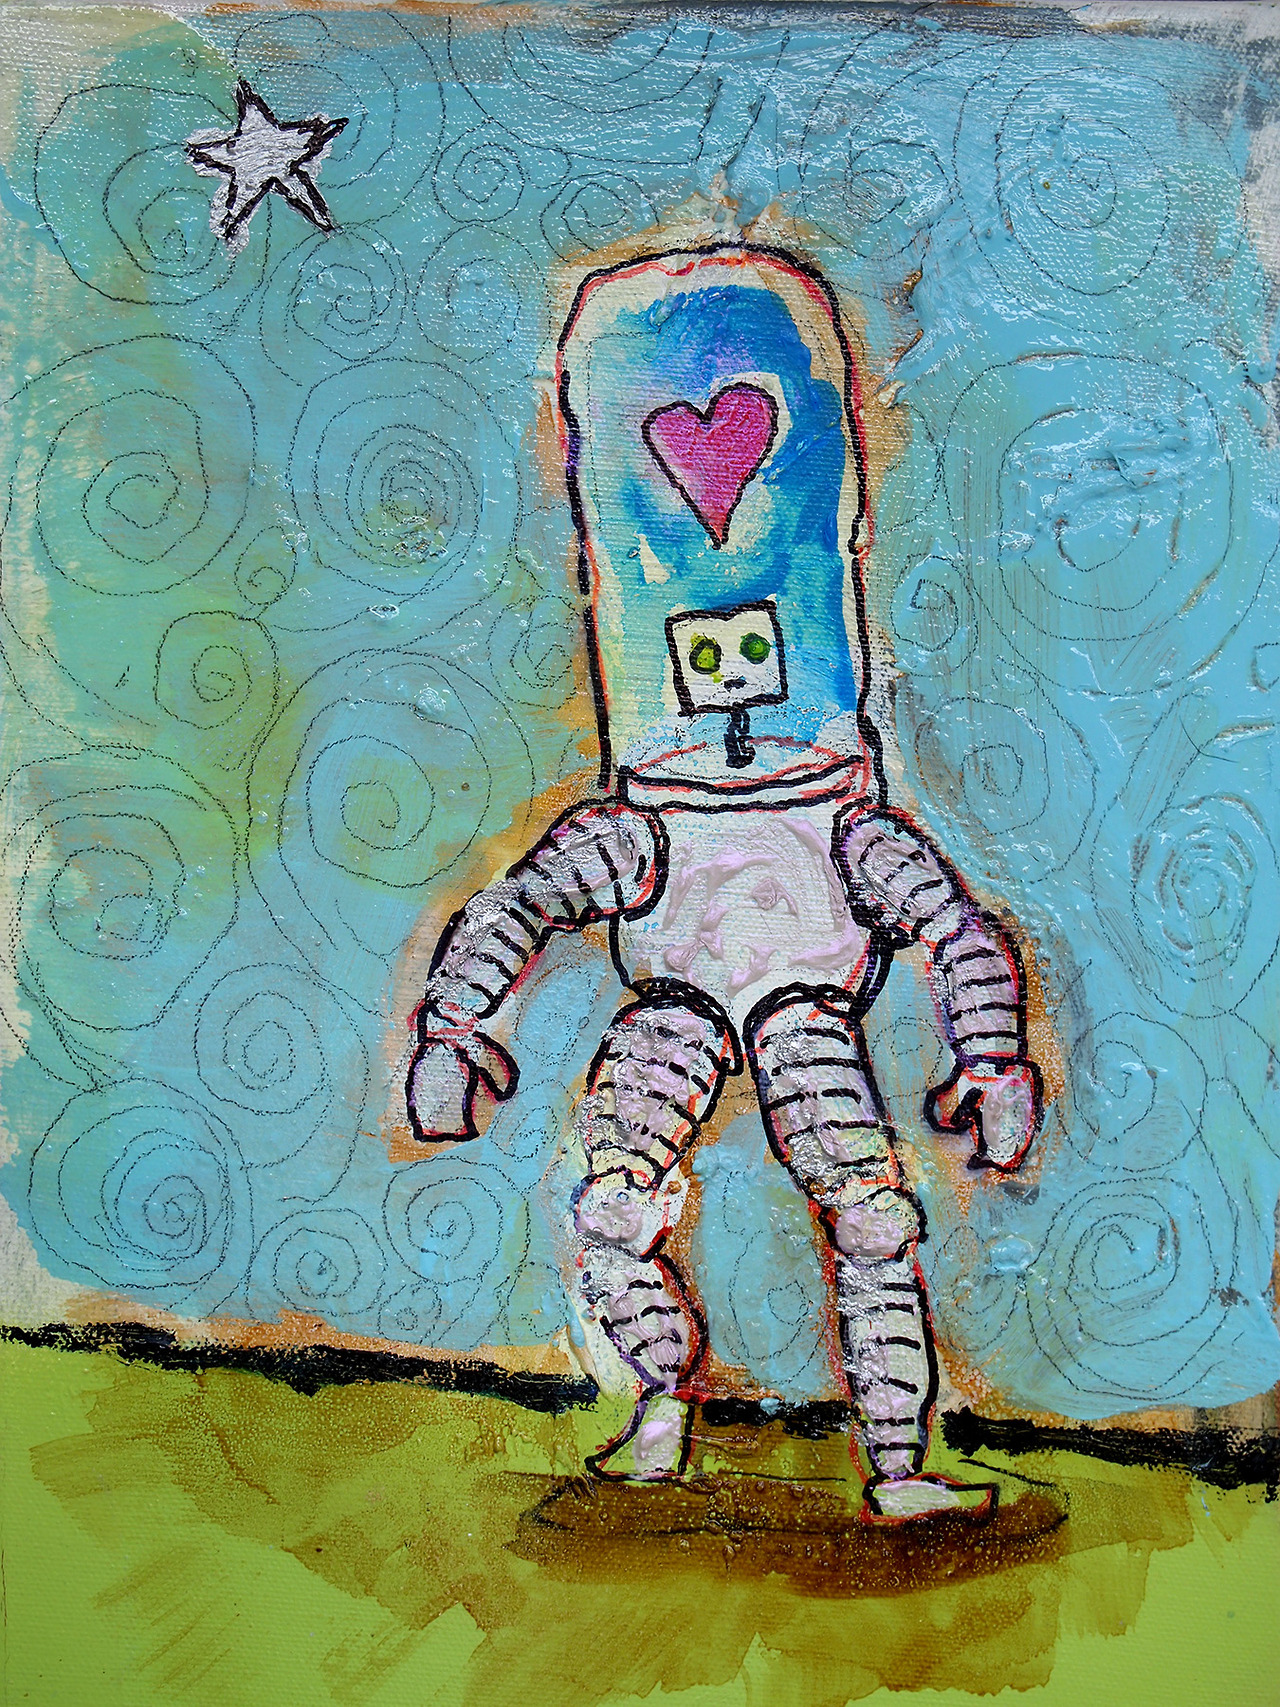 "2/23/13 -  Loverbot 2.0 and the Silver Star       This one is pretty chunky and shiny. Some of the chunk comes from another, bad painting underneath it all.    9"" x 12""   acrylic, shellac, marker, pencil, clear spray paint on canvas.     Available for purchase.   SOLD.   Prints available here:  http://society6.com/taylorwinder"